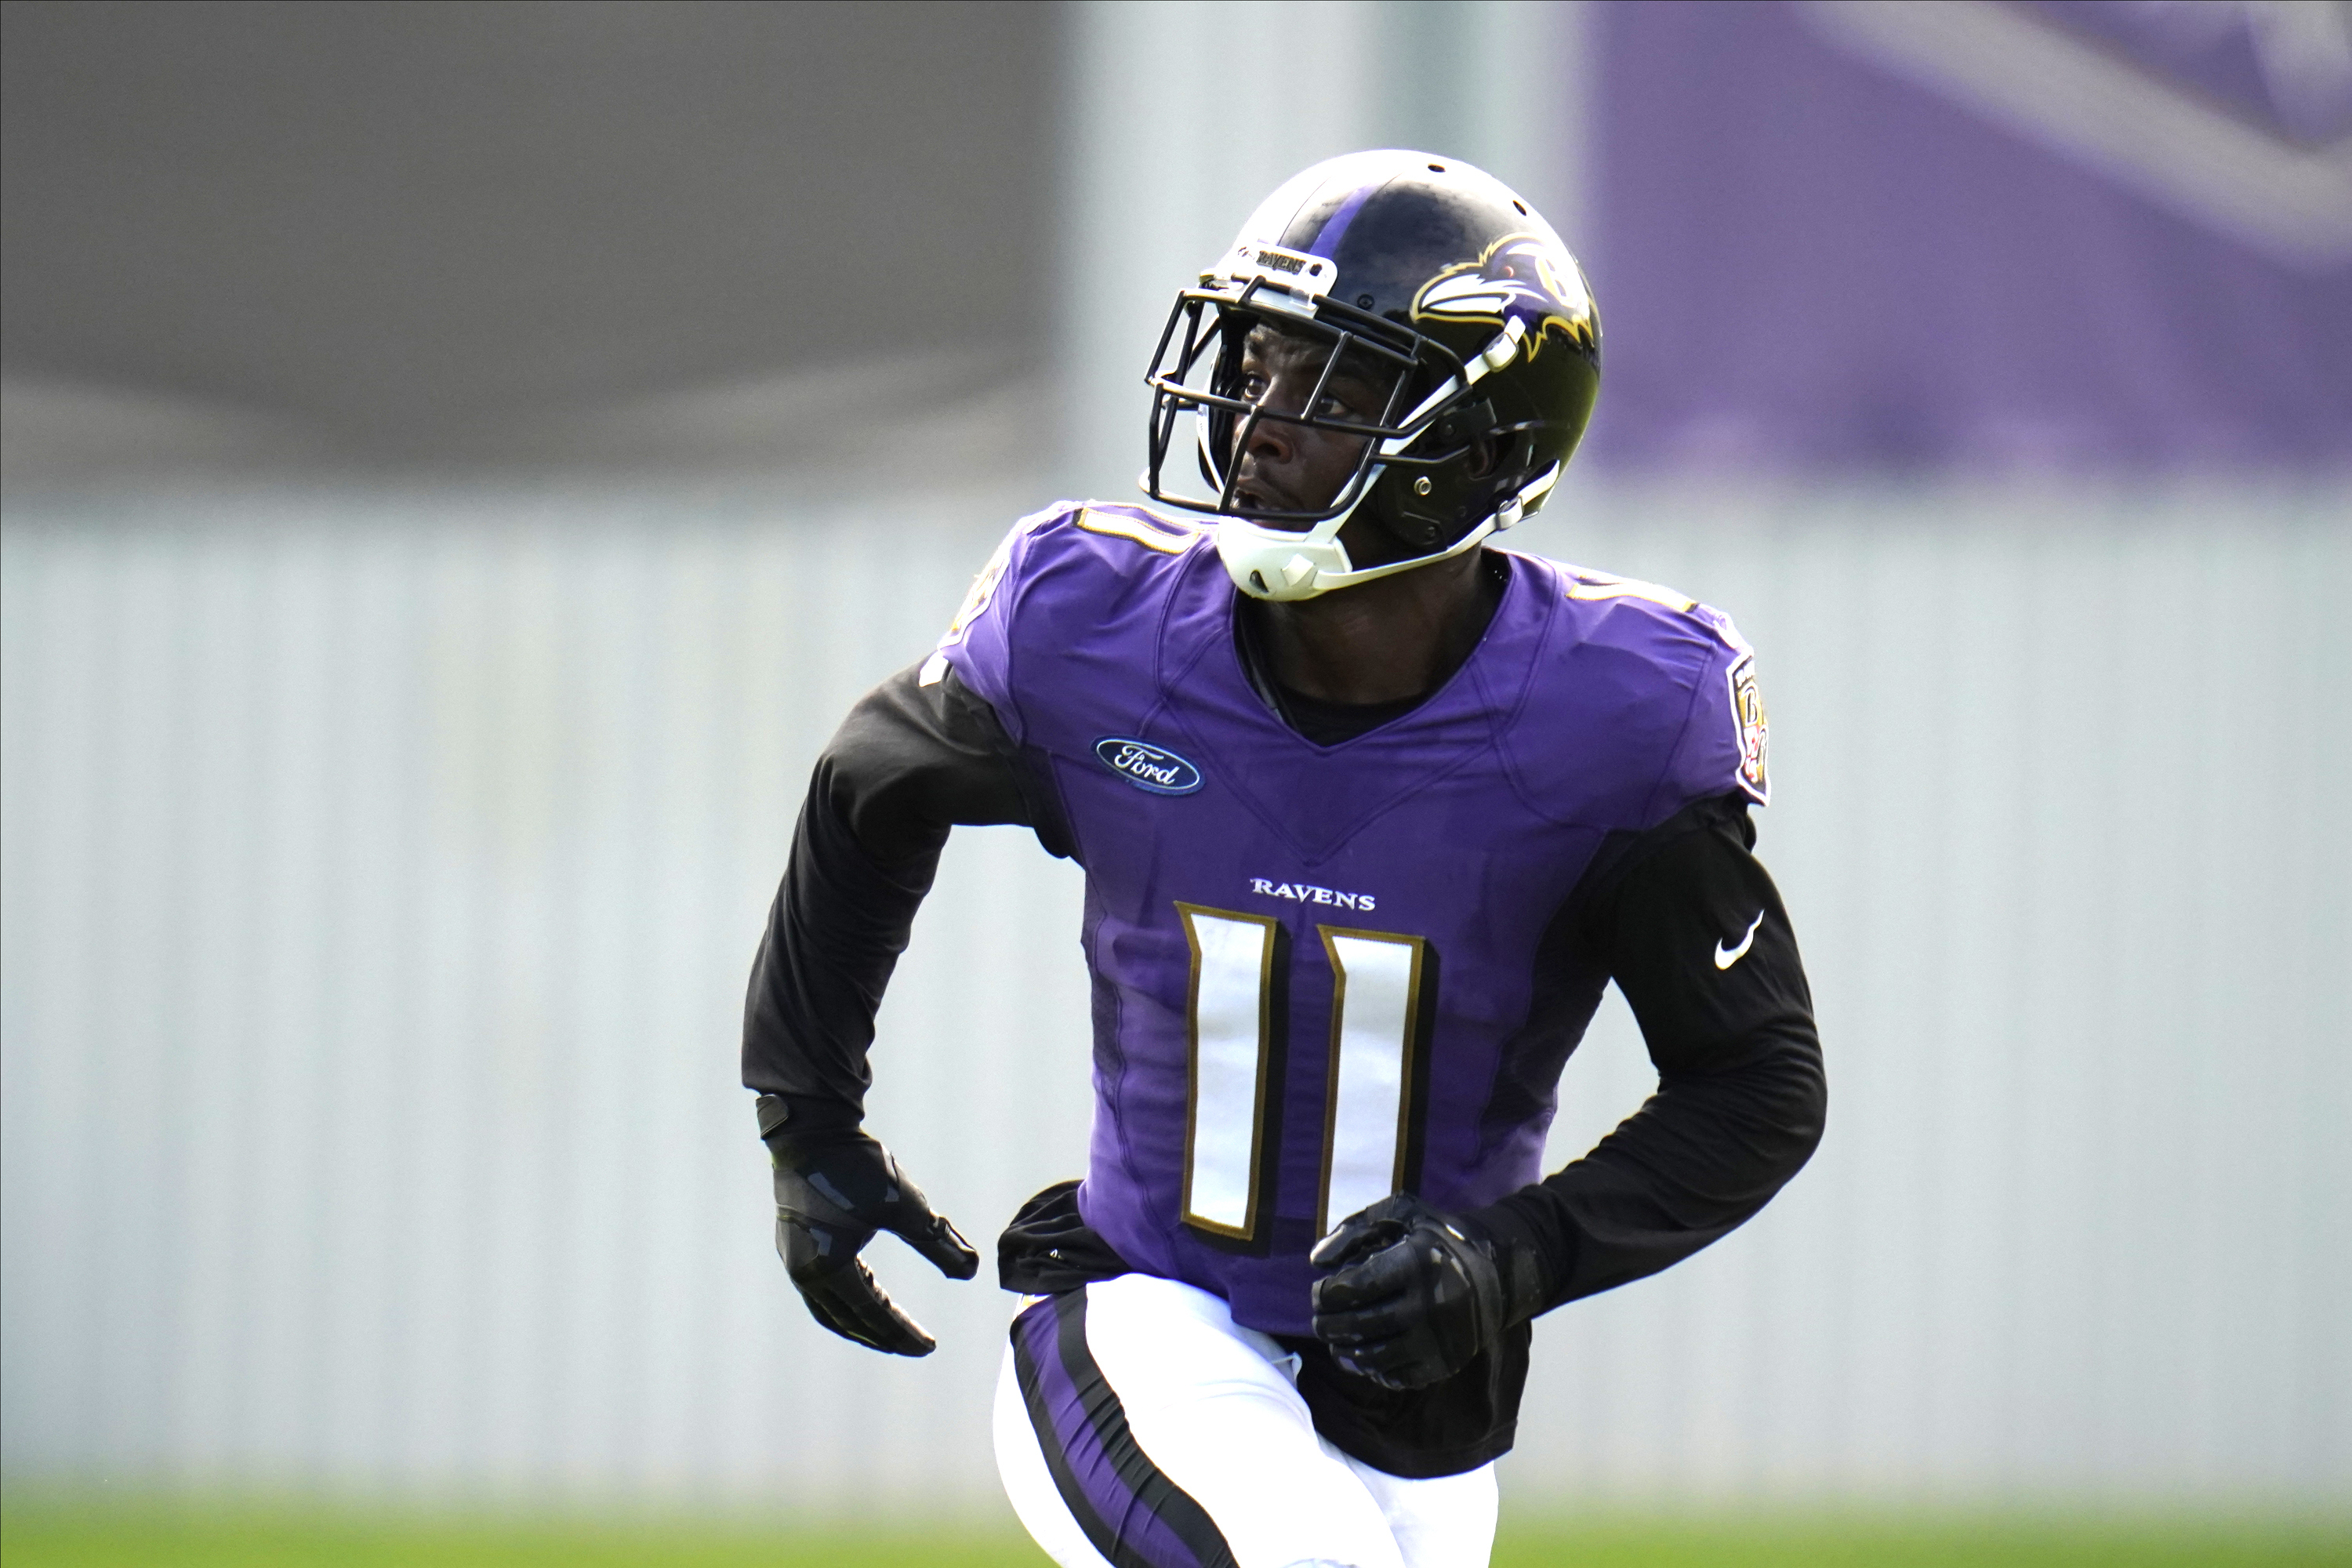 Why Baltimore Ravens James Proche Has Draw Admiration Of Coaches But Little Playing Time On Offense Pennlive Com